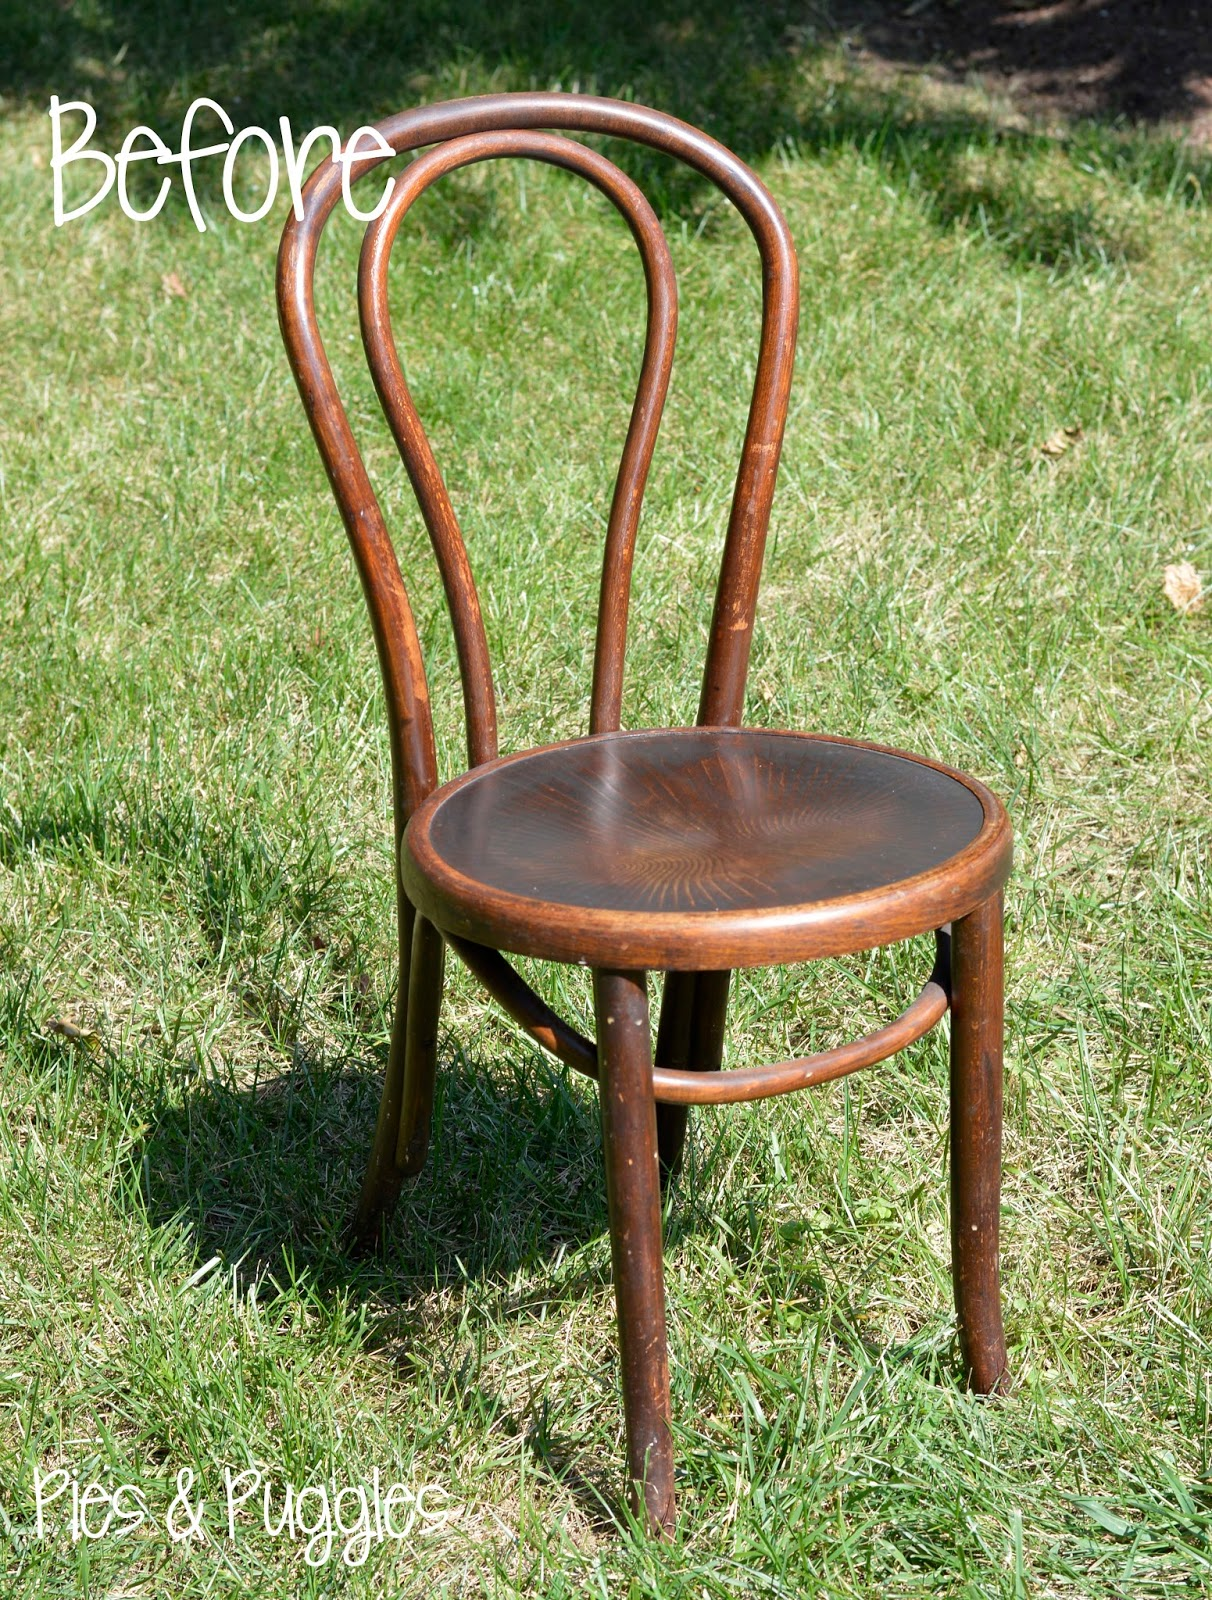 Vintage Bentwood Chairs Desk Chair Platform Pies And Puggles Before After Diy Dipped